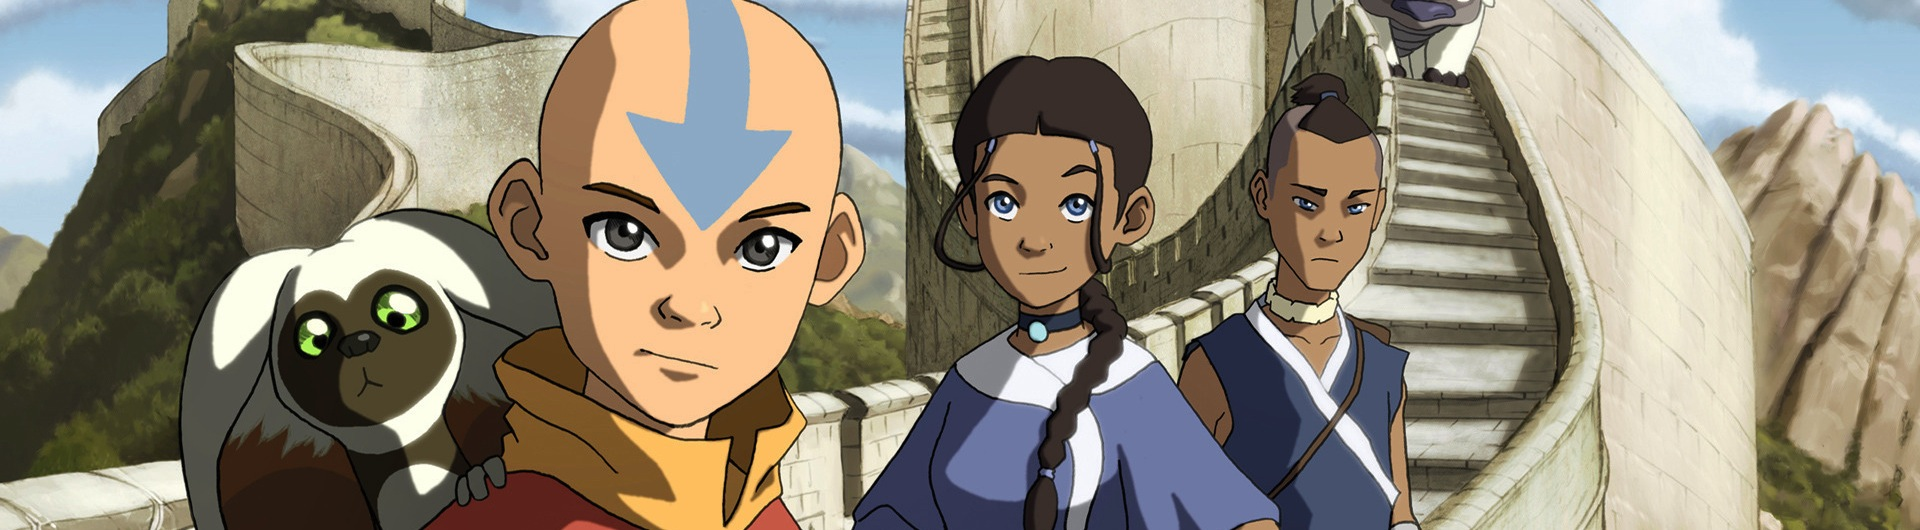 Avatar the Last Airbender, Michael Dante DiMartino Bryan Konietzko, Nickleodeon